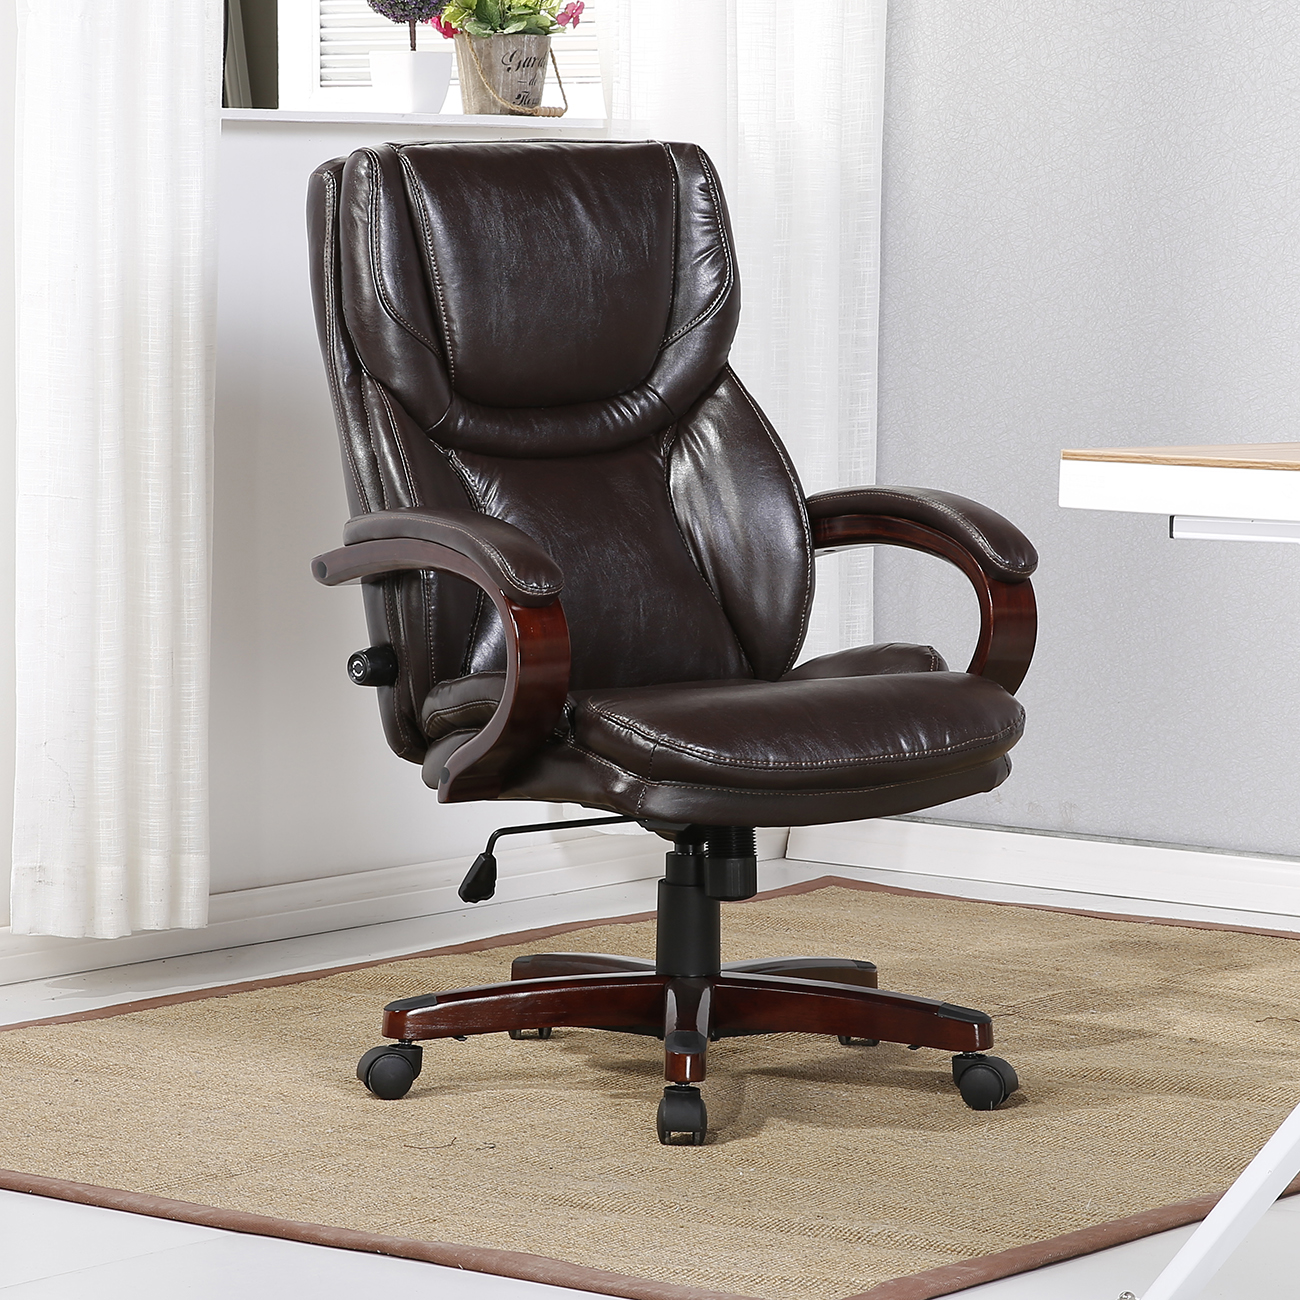 High Back Desk Chair Executive Chair High Back Office Desk Arm Lumbar Support